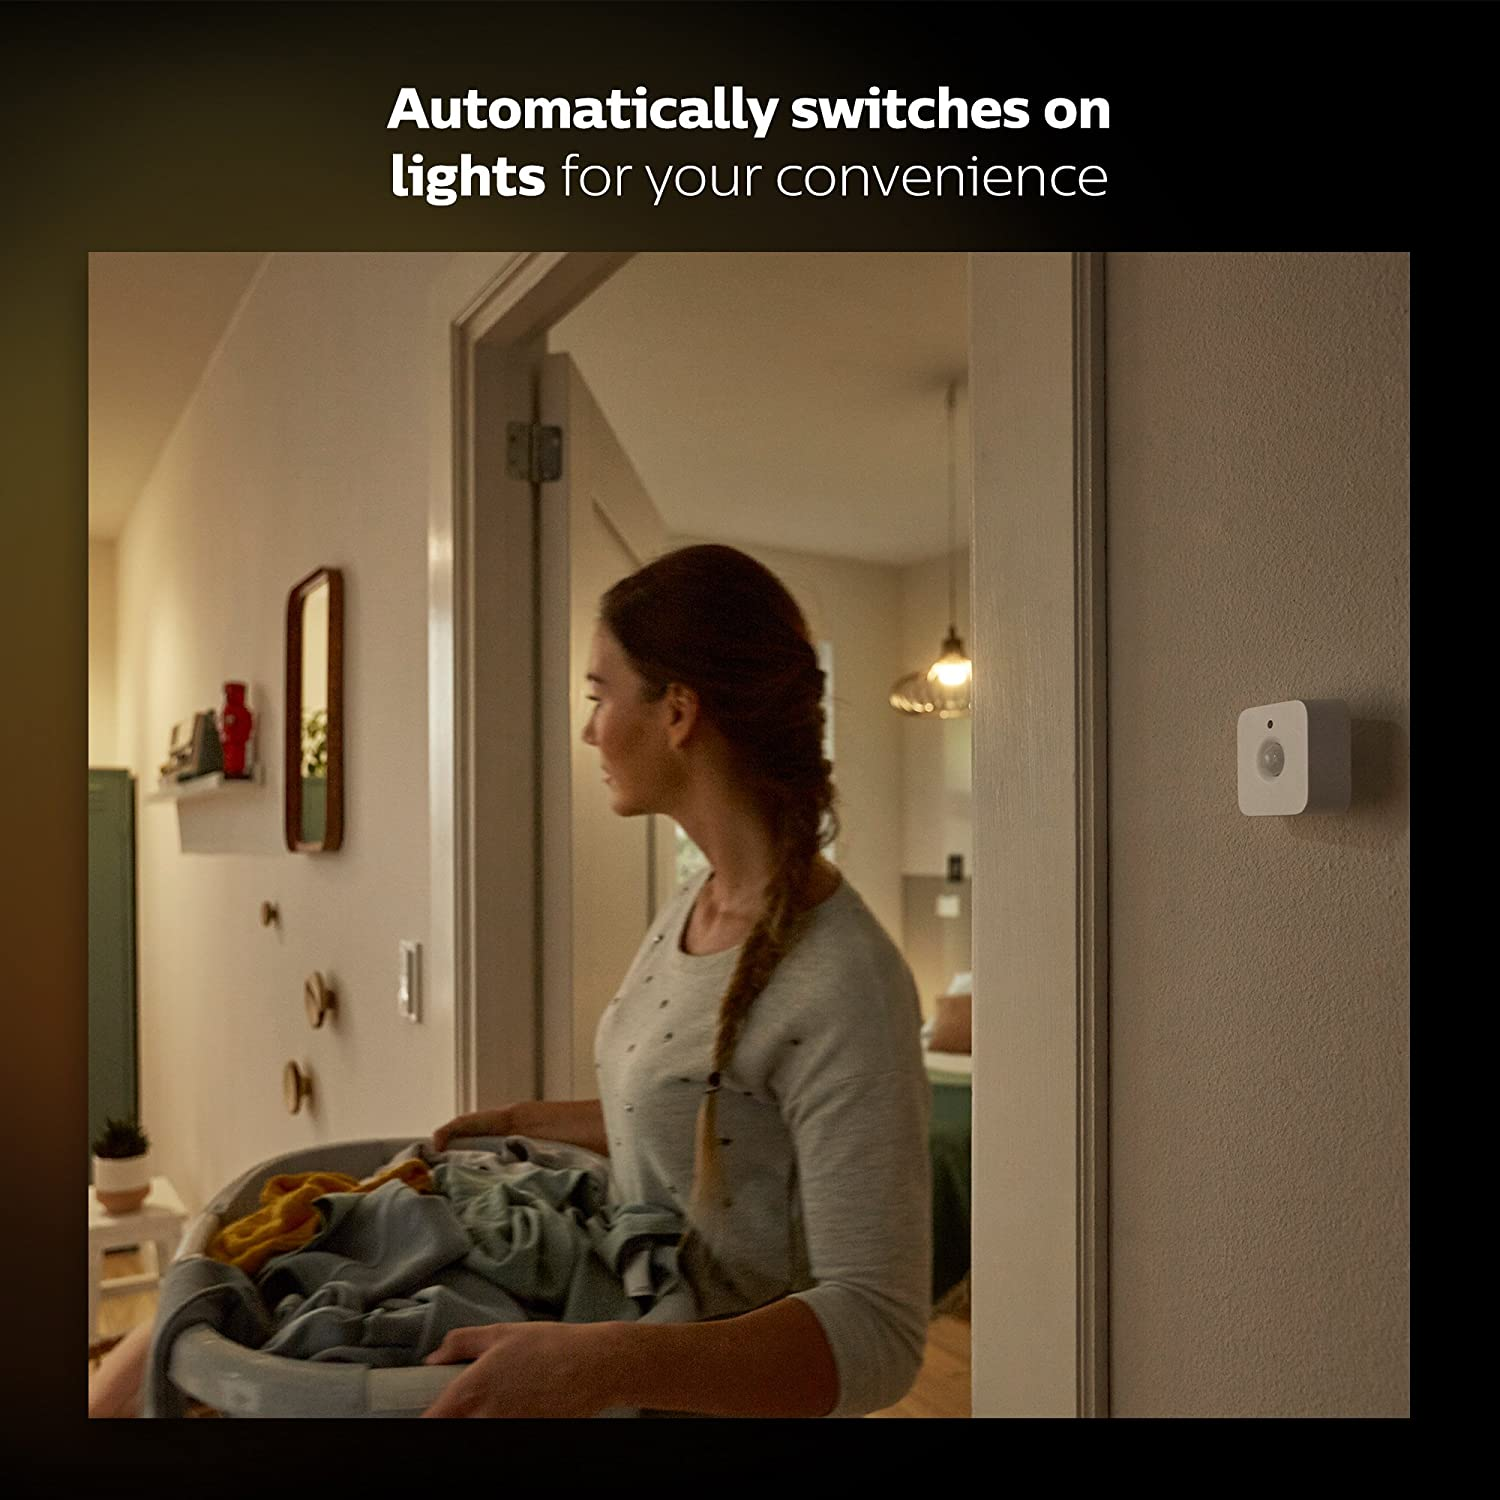 Philips Hue Smart Motion Sensor Installation Free Exclusive For Compare Automatic Room Light Controller Source Lights